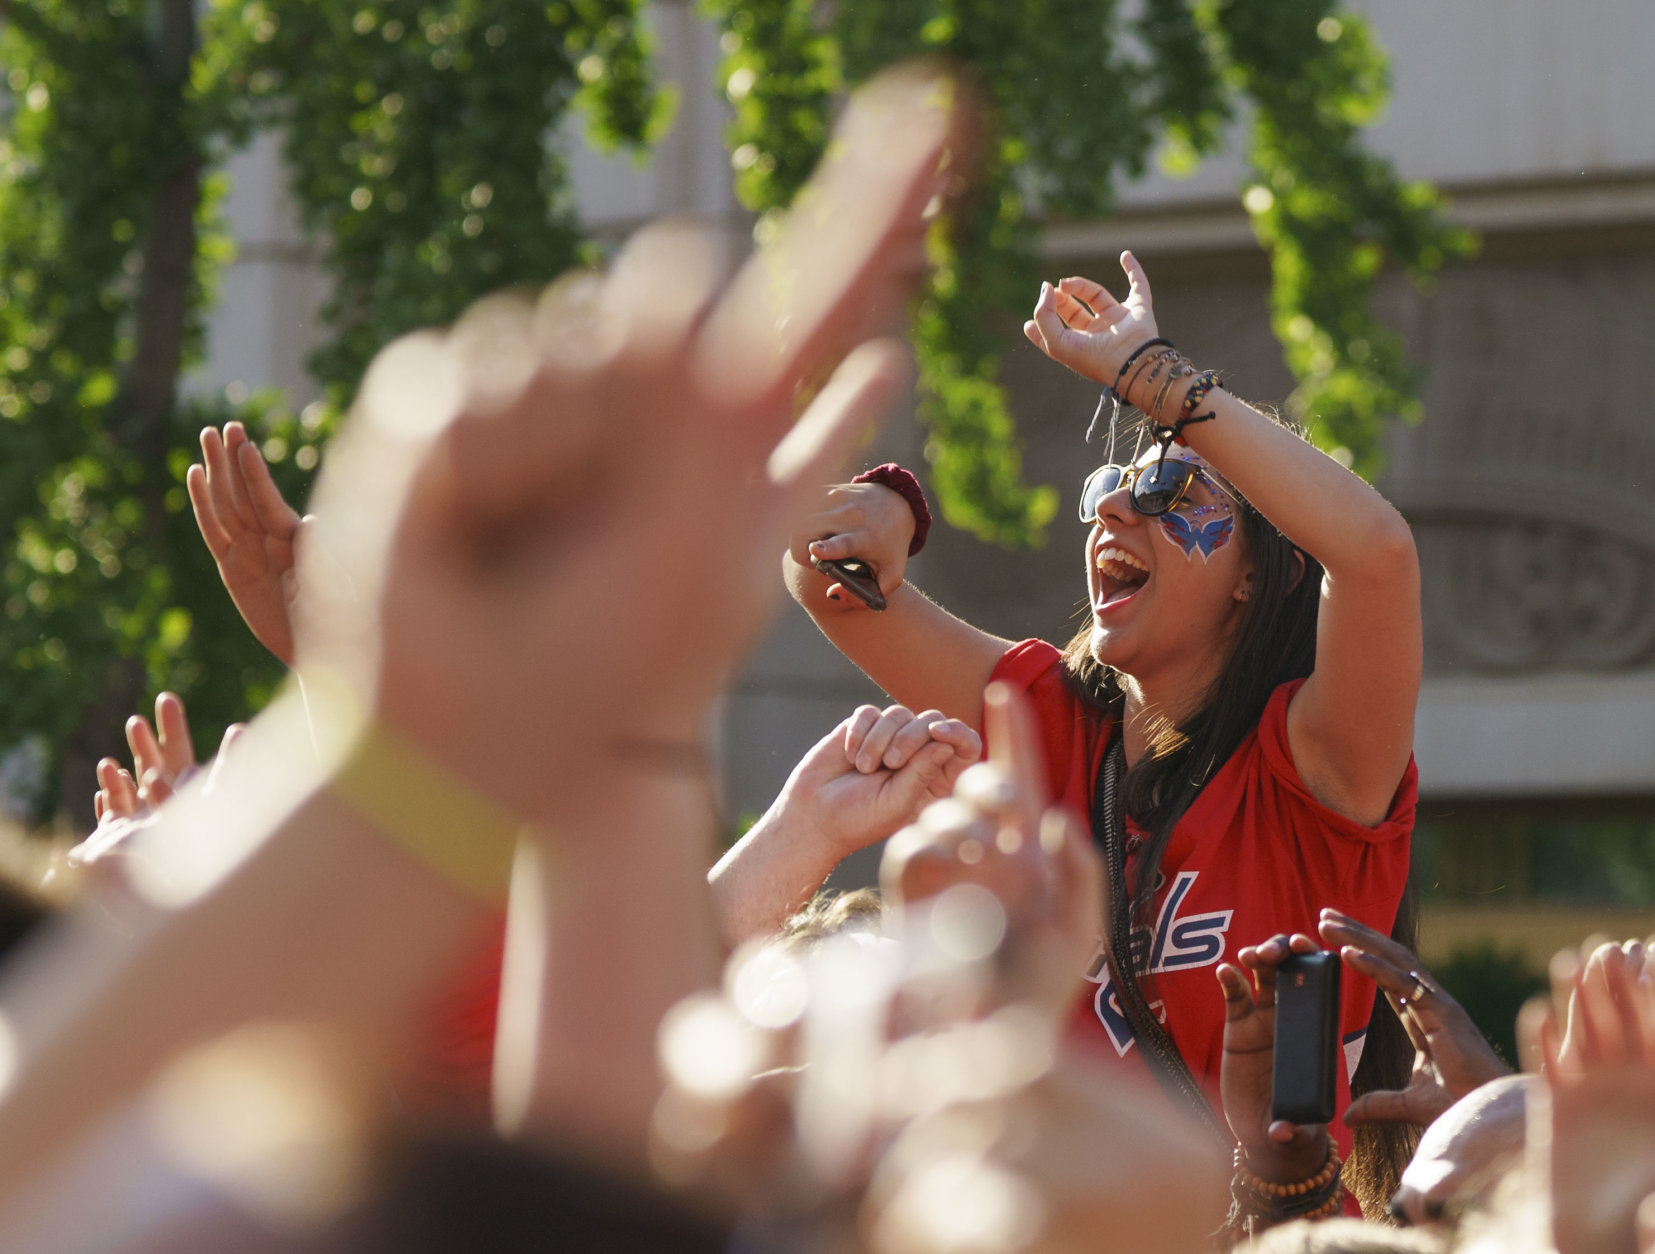 A Washington Capitals fan is held high and fans cheer during a Fall Out Boy performance before Game 4 of the NHL hockey Stanley Cup Final between the Washington Capitals and the Vegas Golden Knights, Monday, June 4, 2018, in Washington. (AP Photo/Carolyn Kaster)